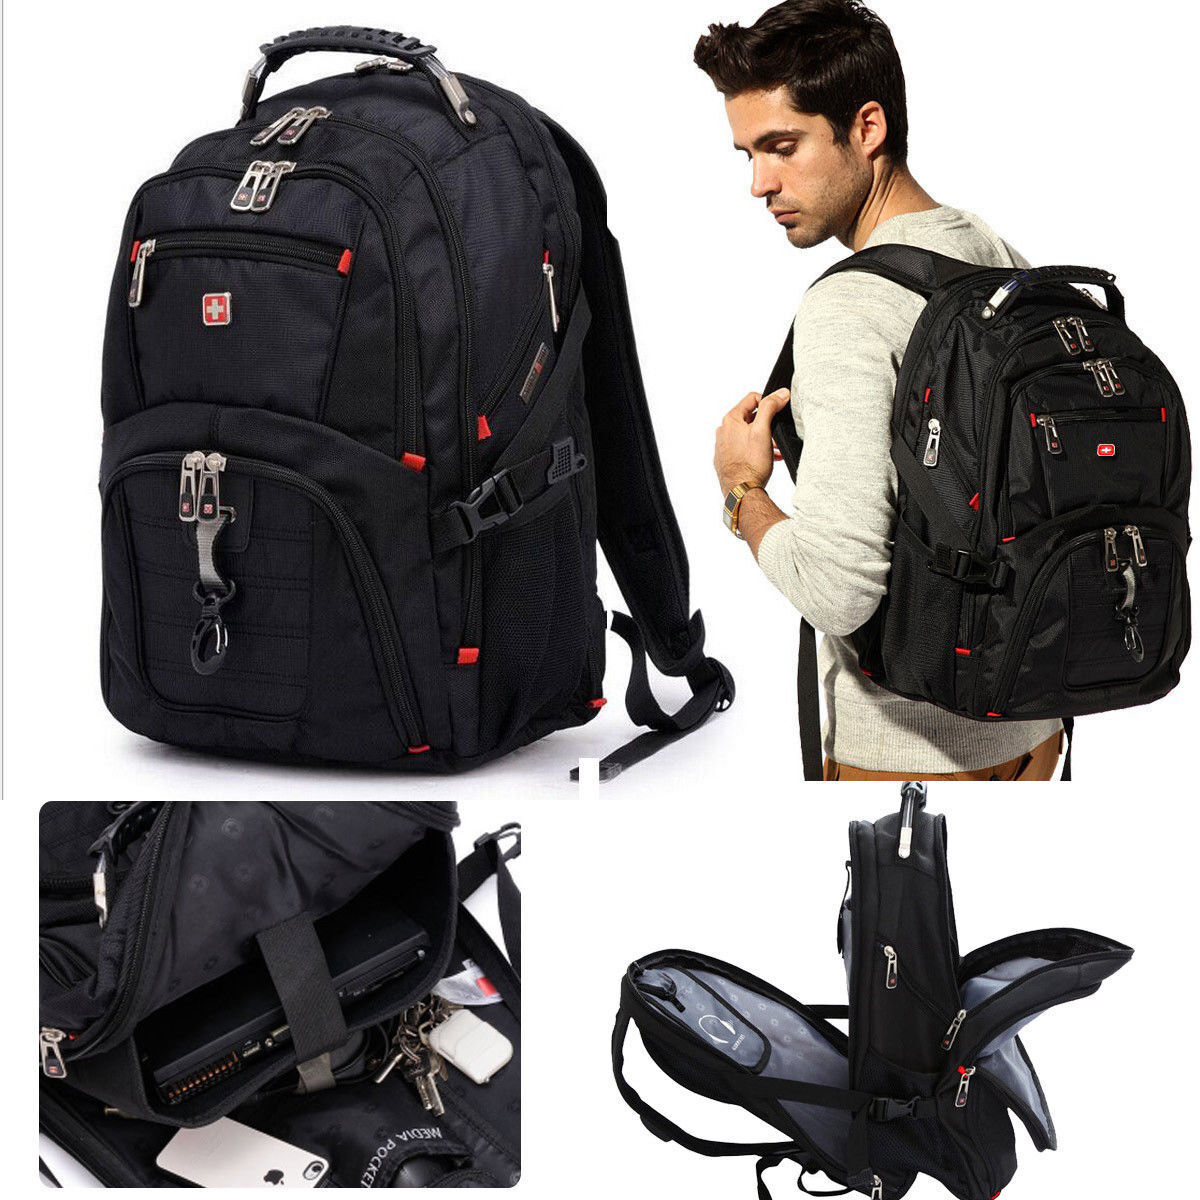 Waterproof Laptop Backpack Reviews- Fenix Toulouse Handball 2fc8cb7d67016